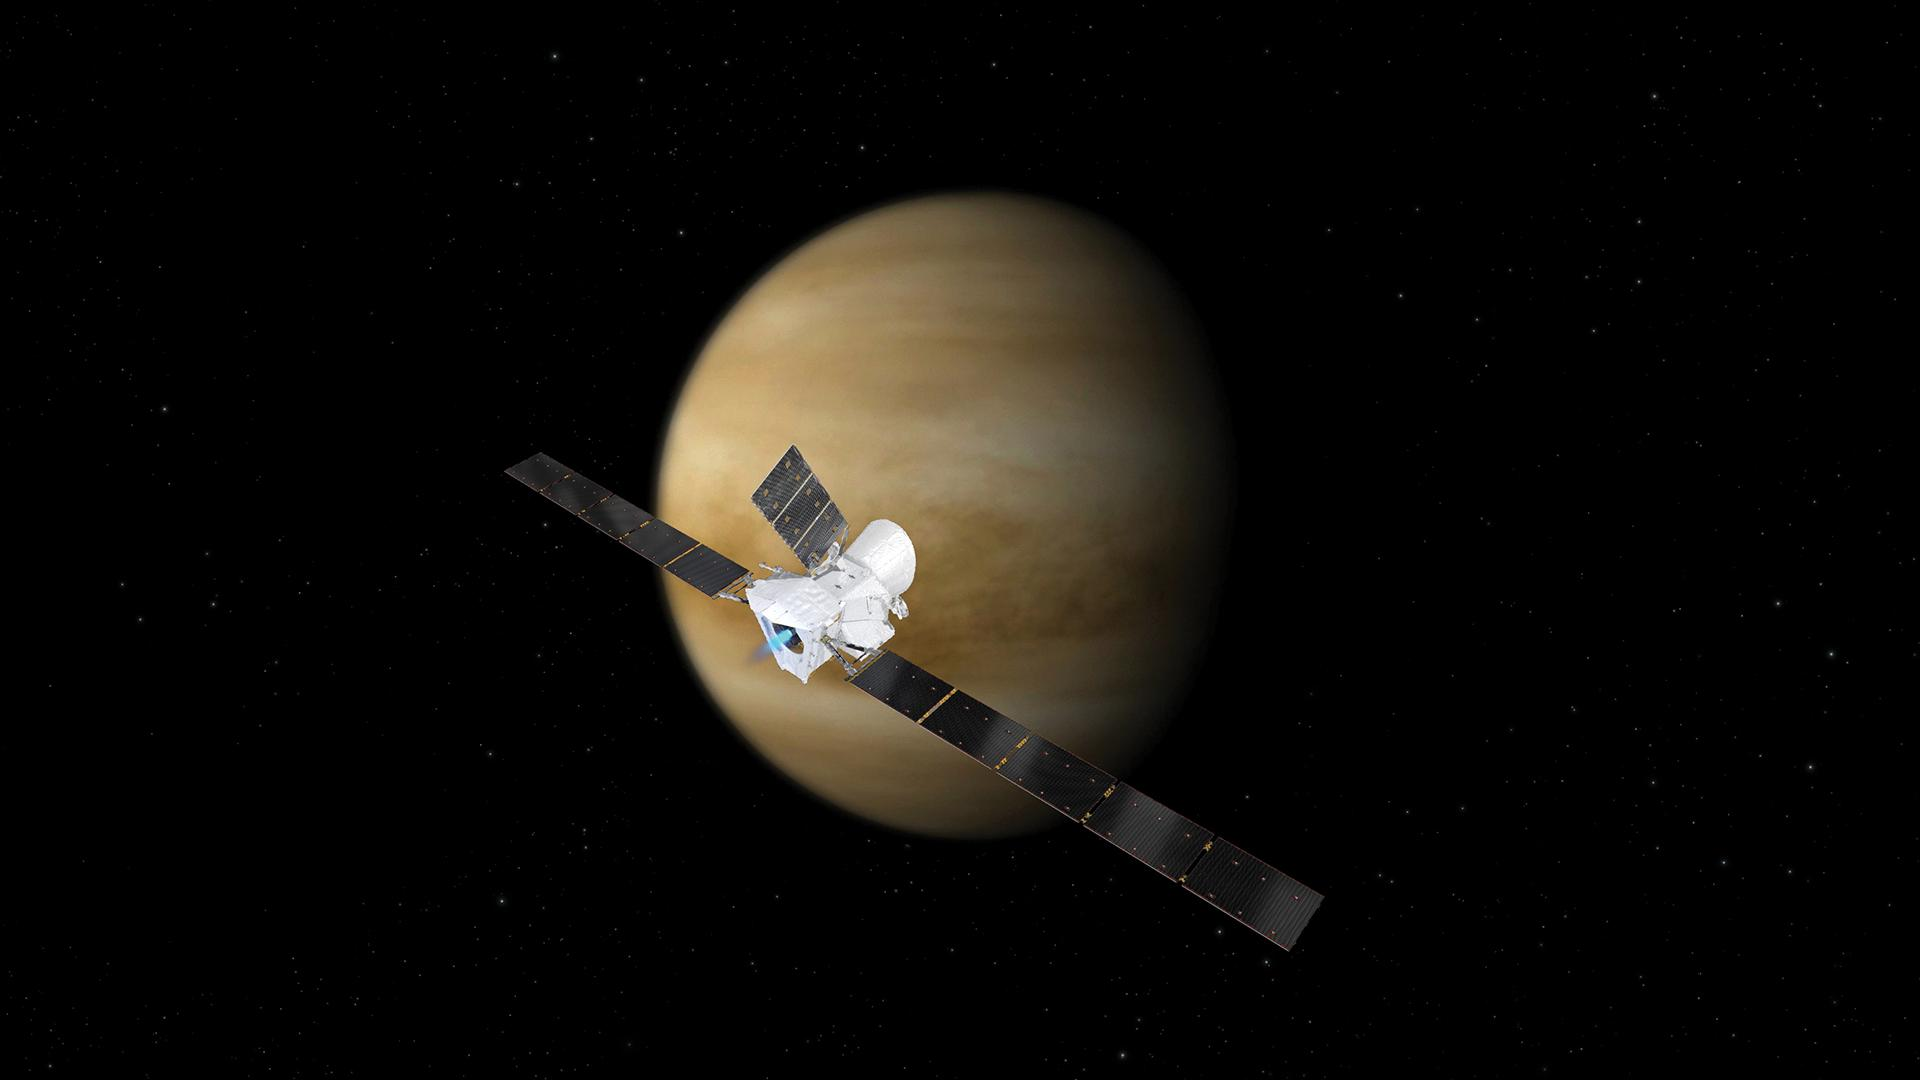 First Venus flyby of BepiColombo on the way to Mercury